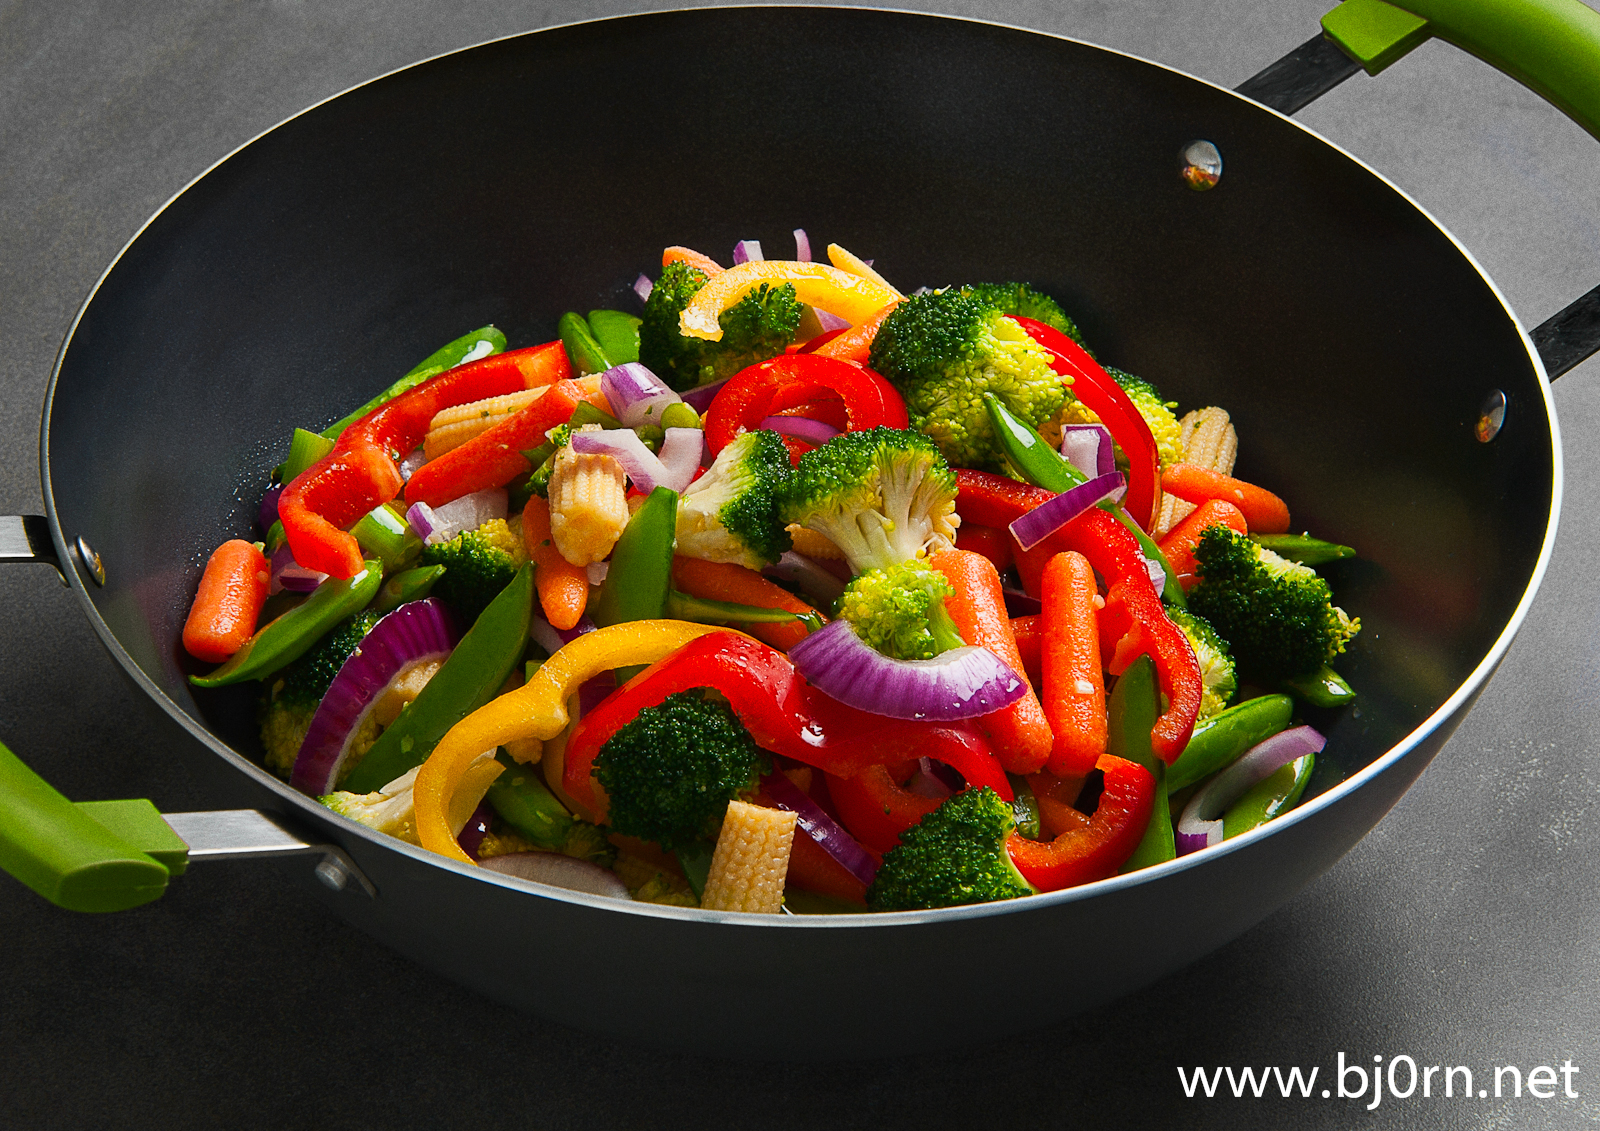 photo: Bjørn Christiansen, Wok pan from Ikea with Vegetables